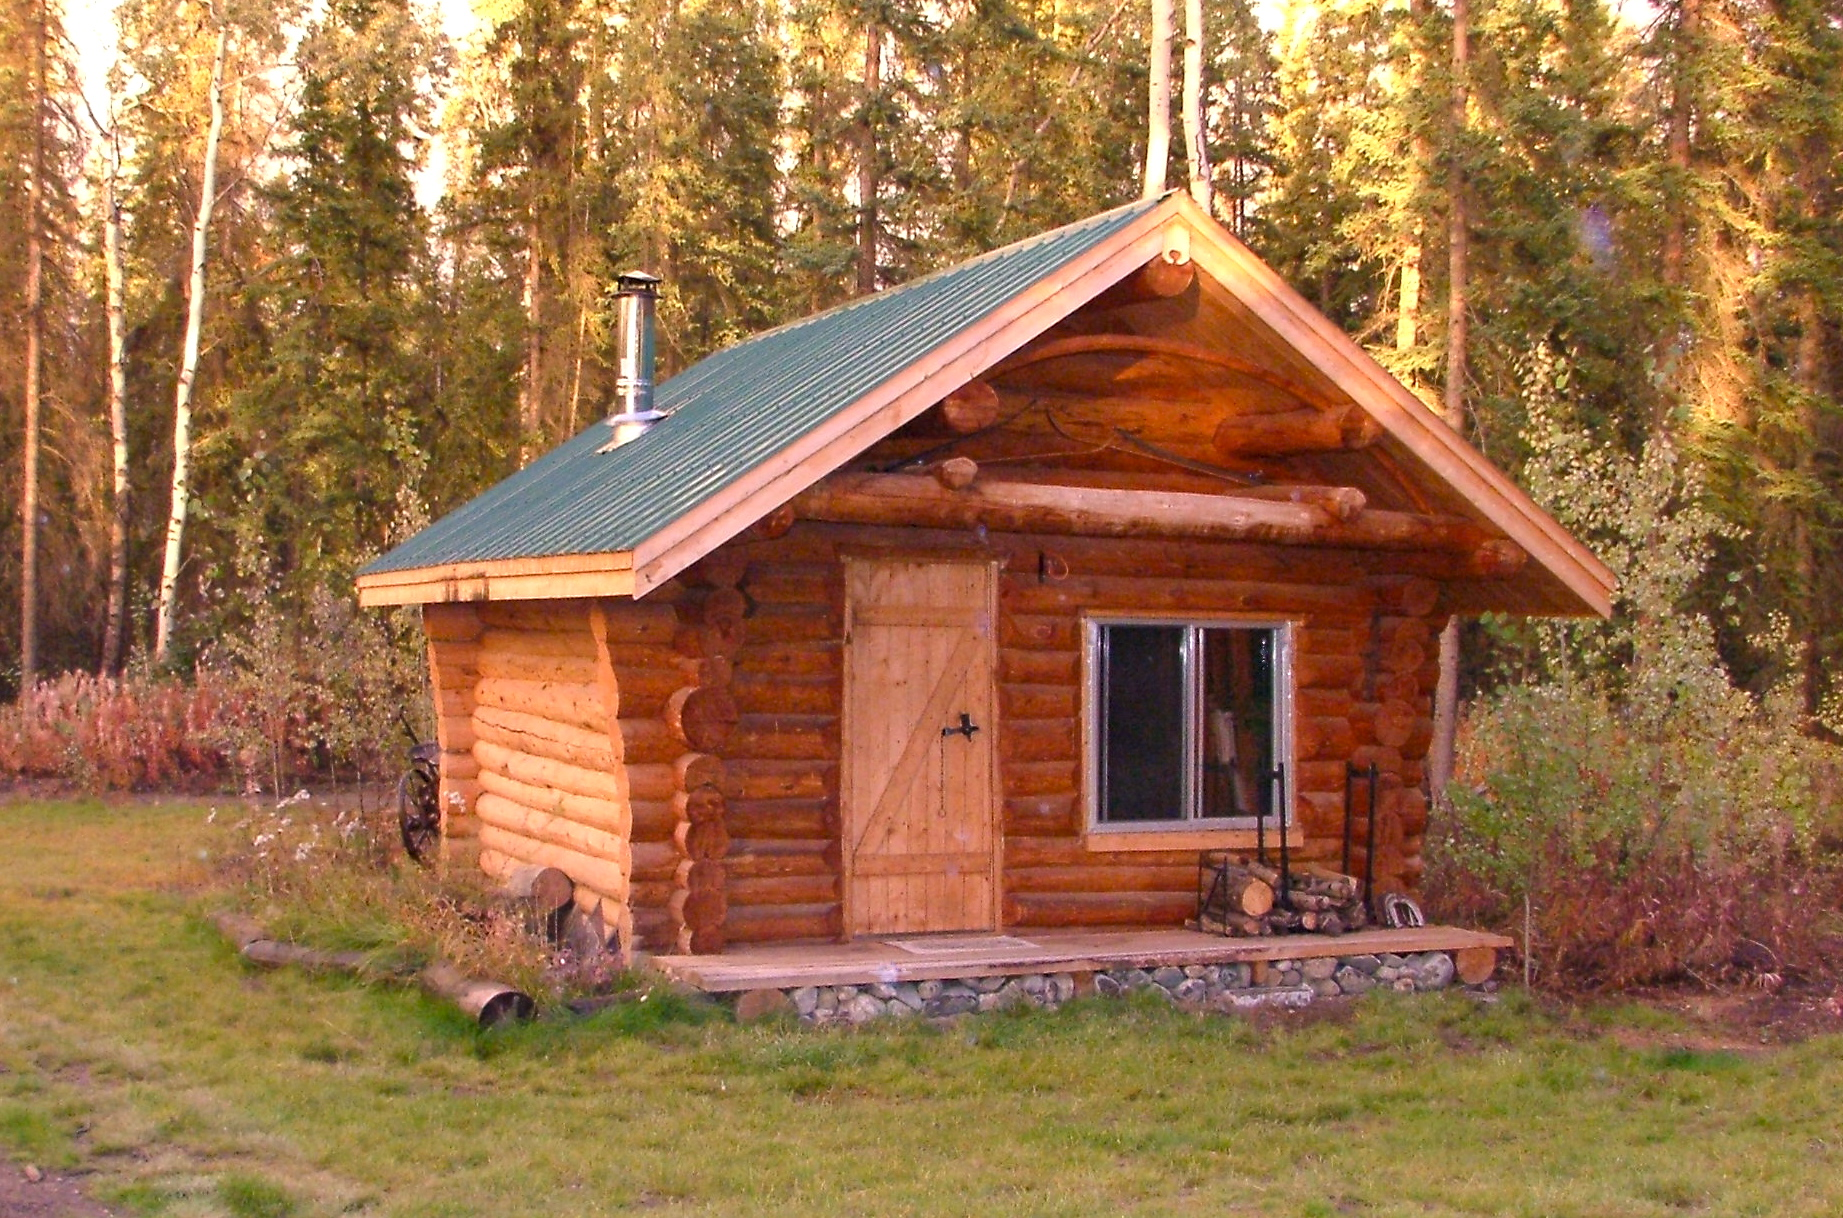 My Cozy 12 X 16 Foot Log Cabin Micro Mansions Blog